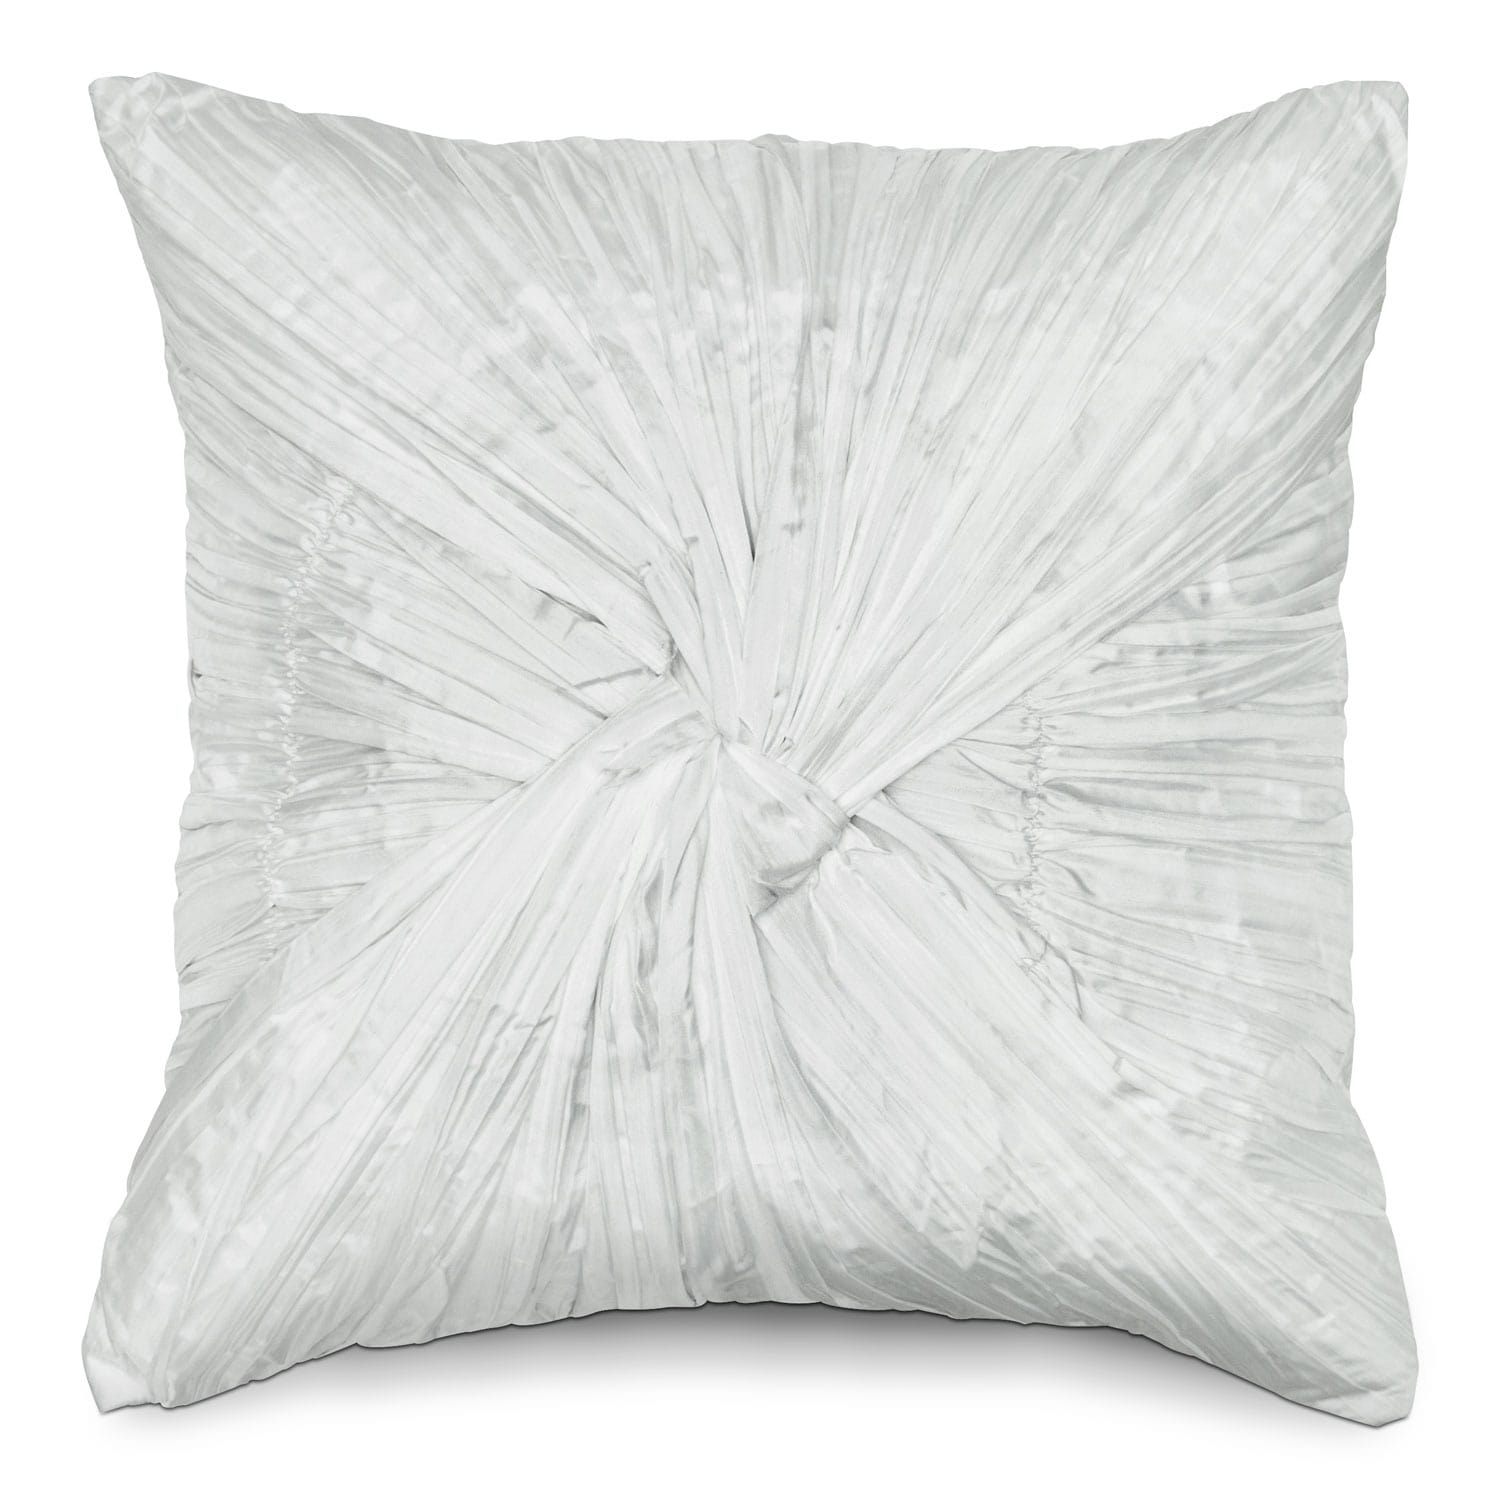 Amour White Decorative Pillow